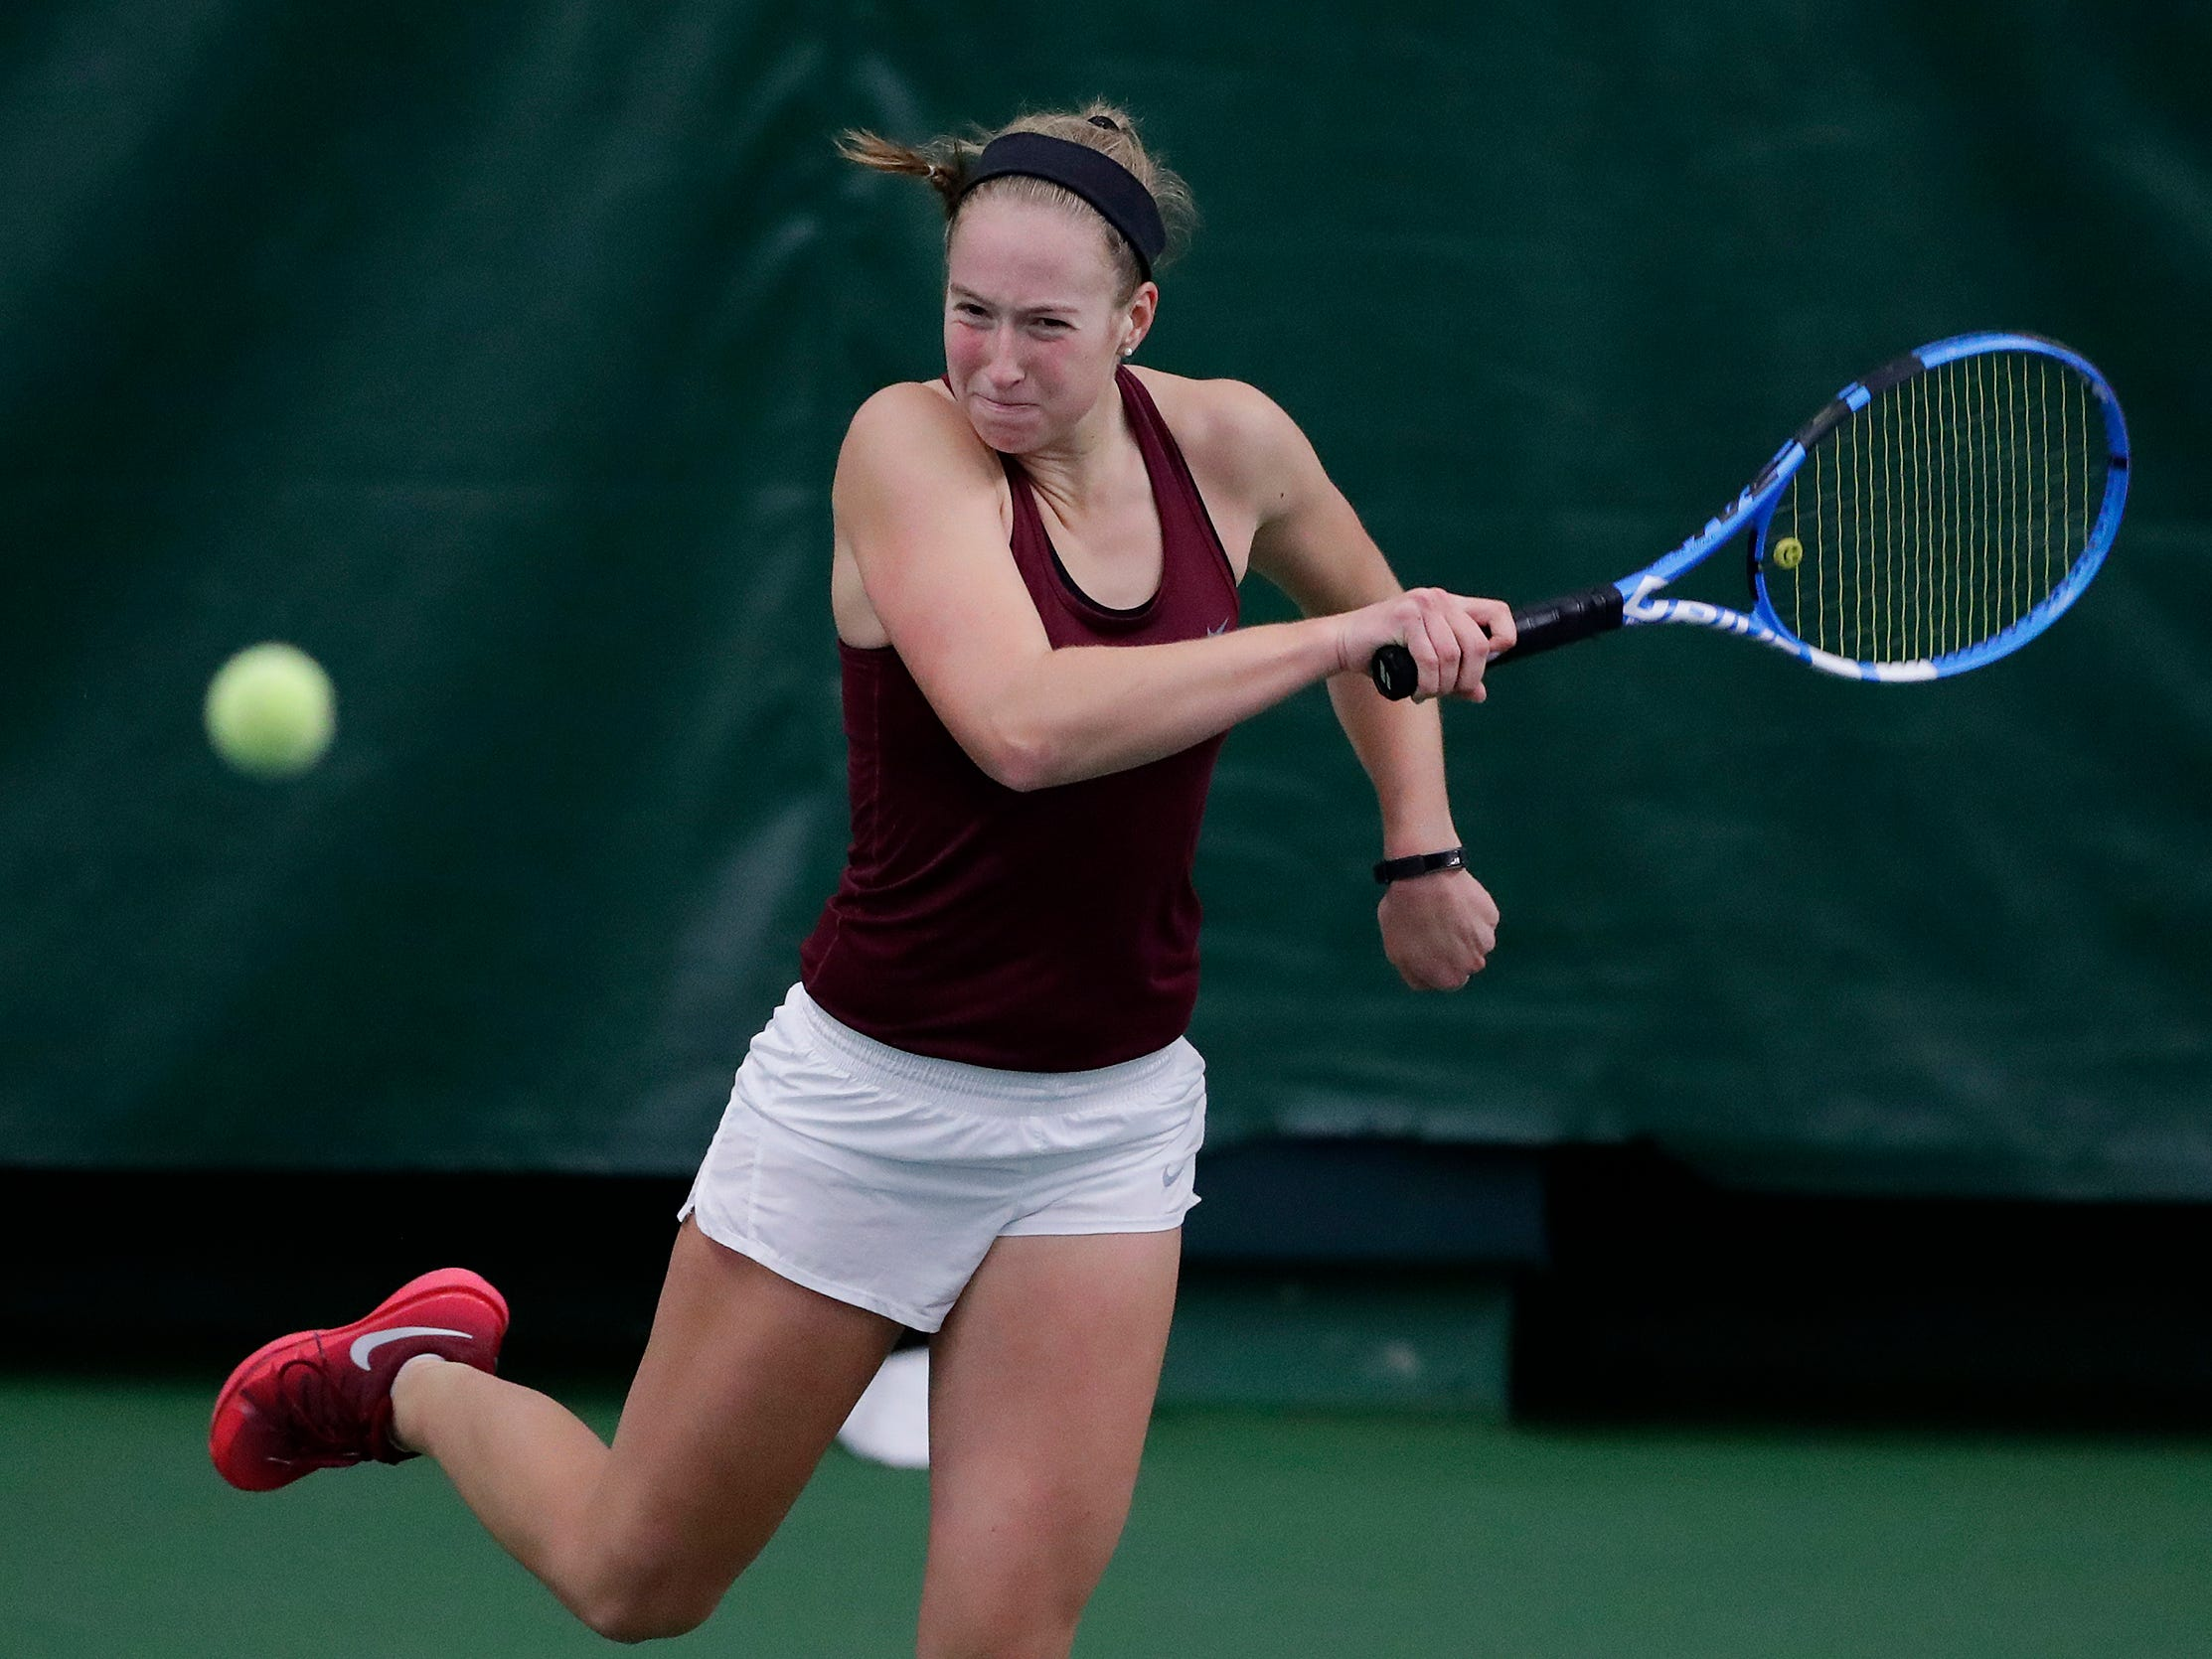 Fond du Lac's Kellie Hierl plays in a Division 1 singles match at WIAA 2018 Girls State Tennis Tournament at Nielsen Tennis Stadium on Friday, October 12, 2018 in Madison, Wis.